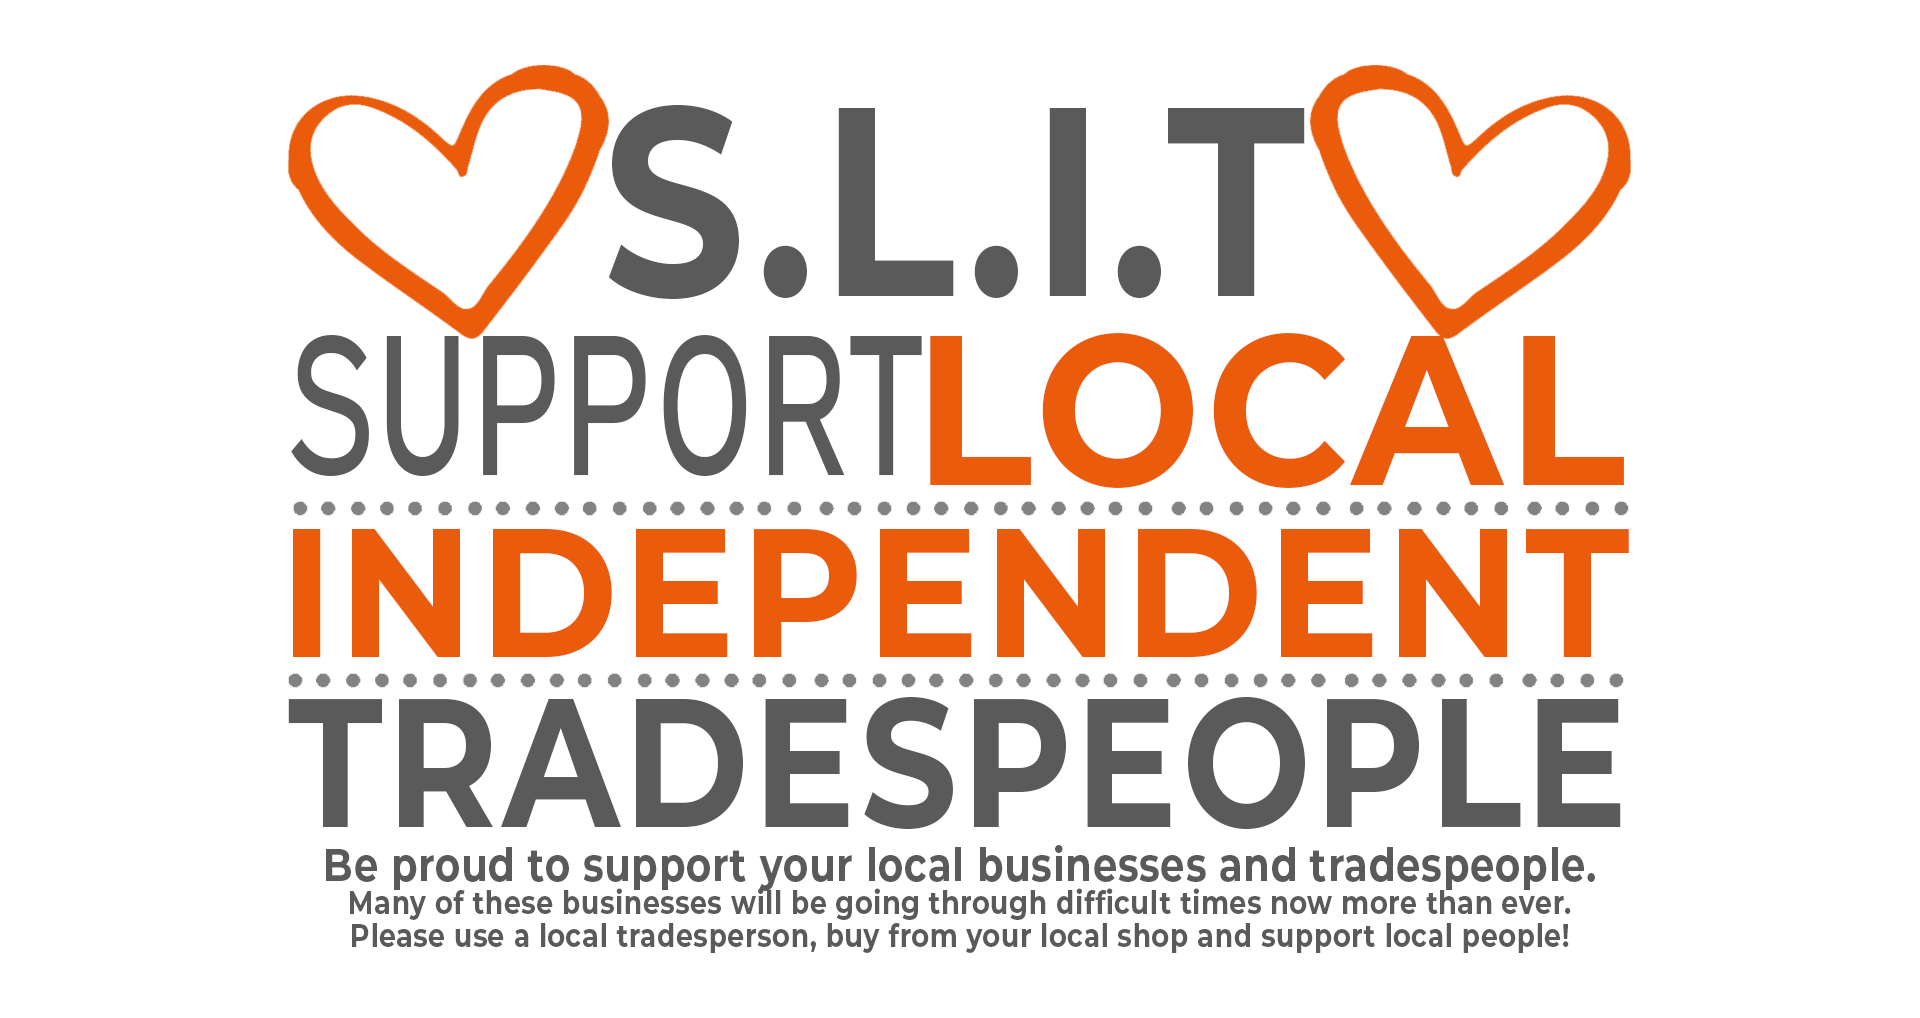 Support Local Independent Tradespeople